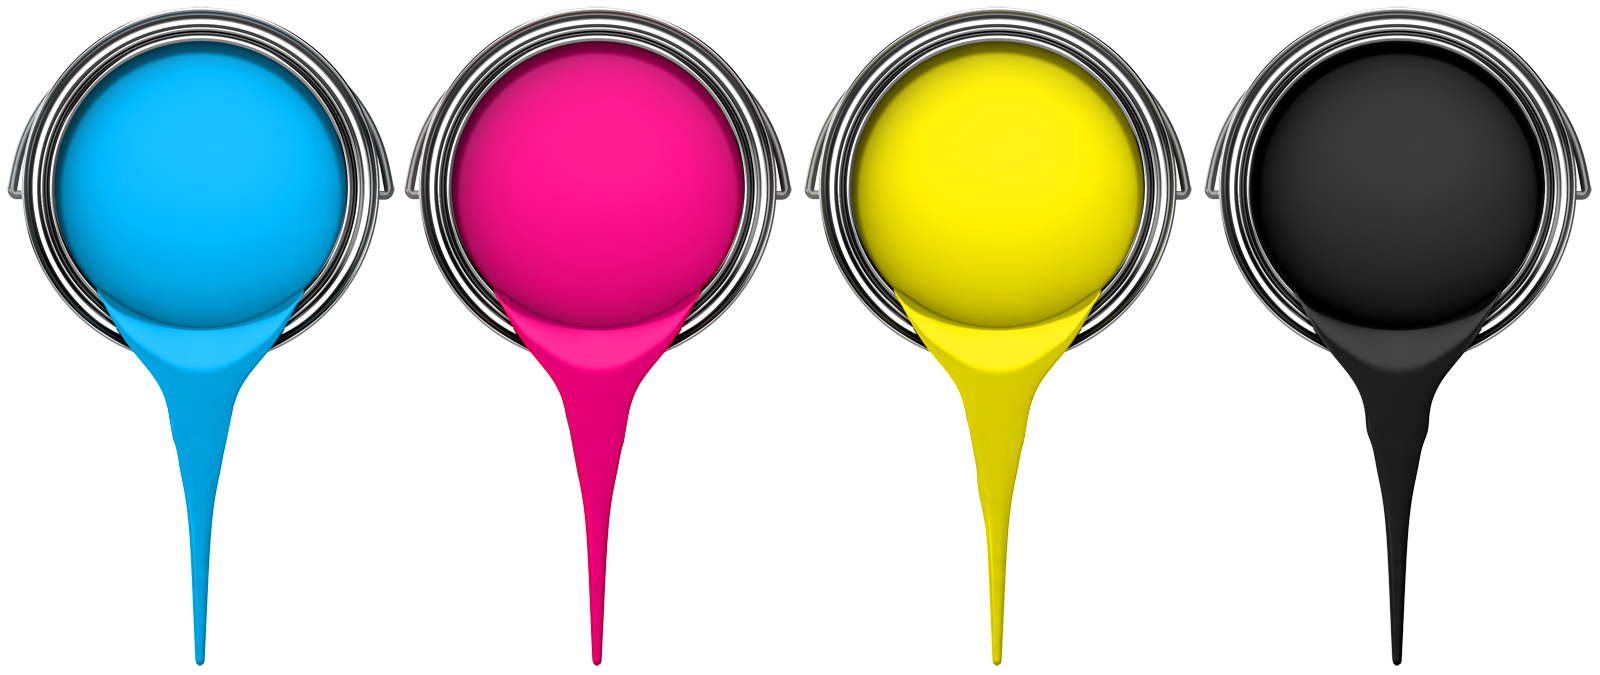 Cricket clipart colour. Digital printing background collection